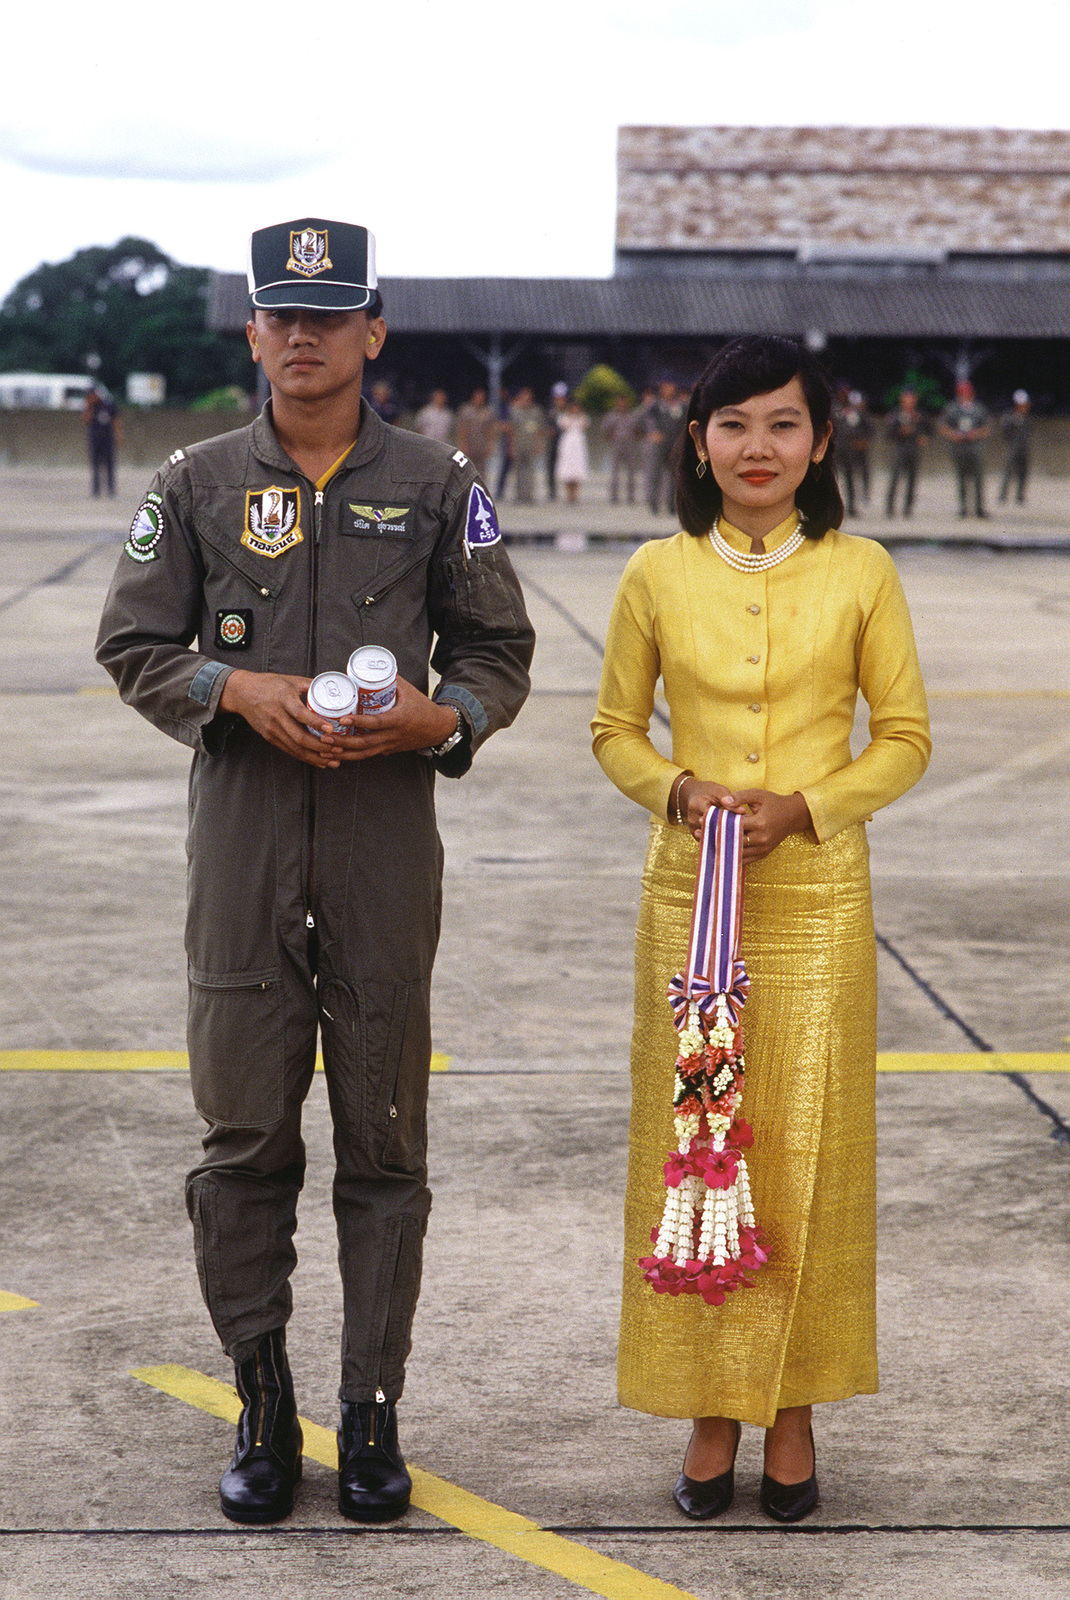 A Thai pilot and a VIP pose for a photograph during the joint Thai